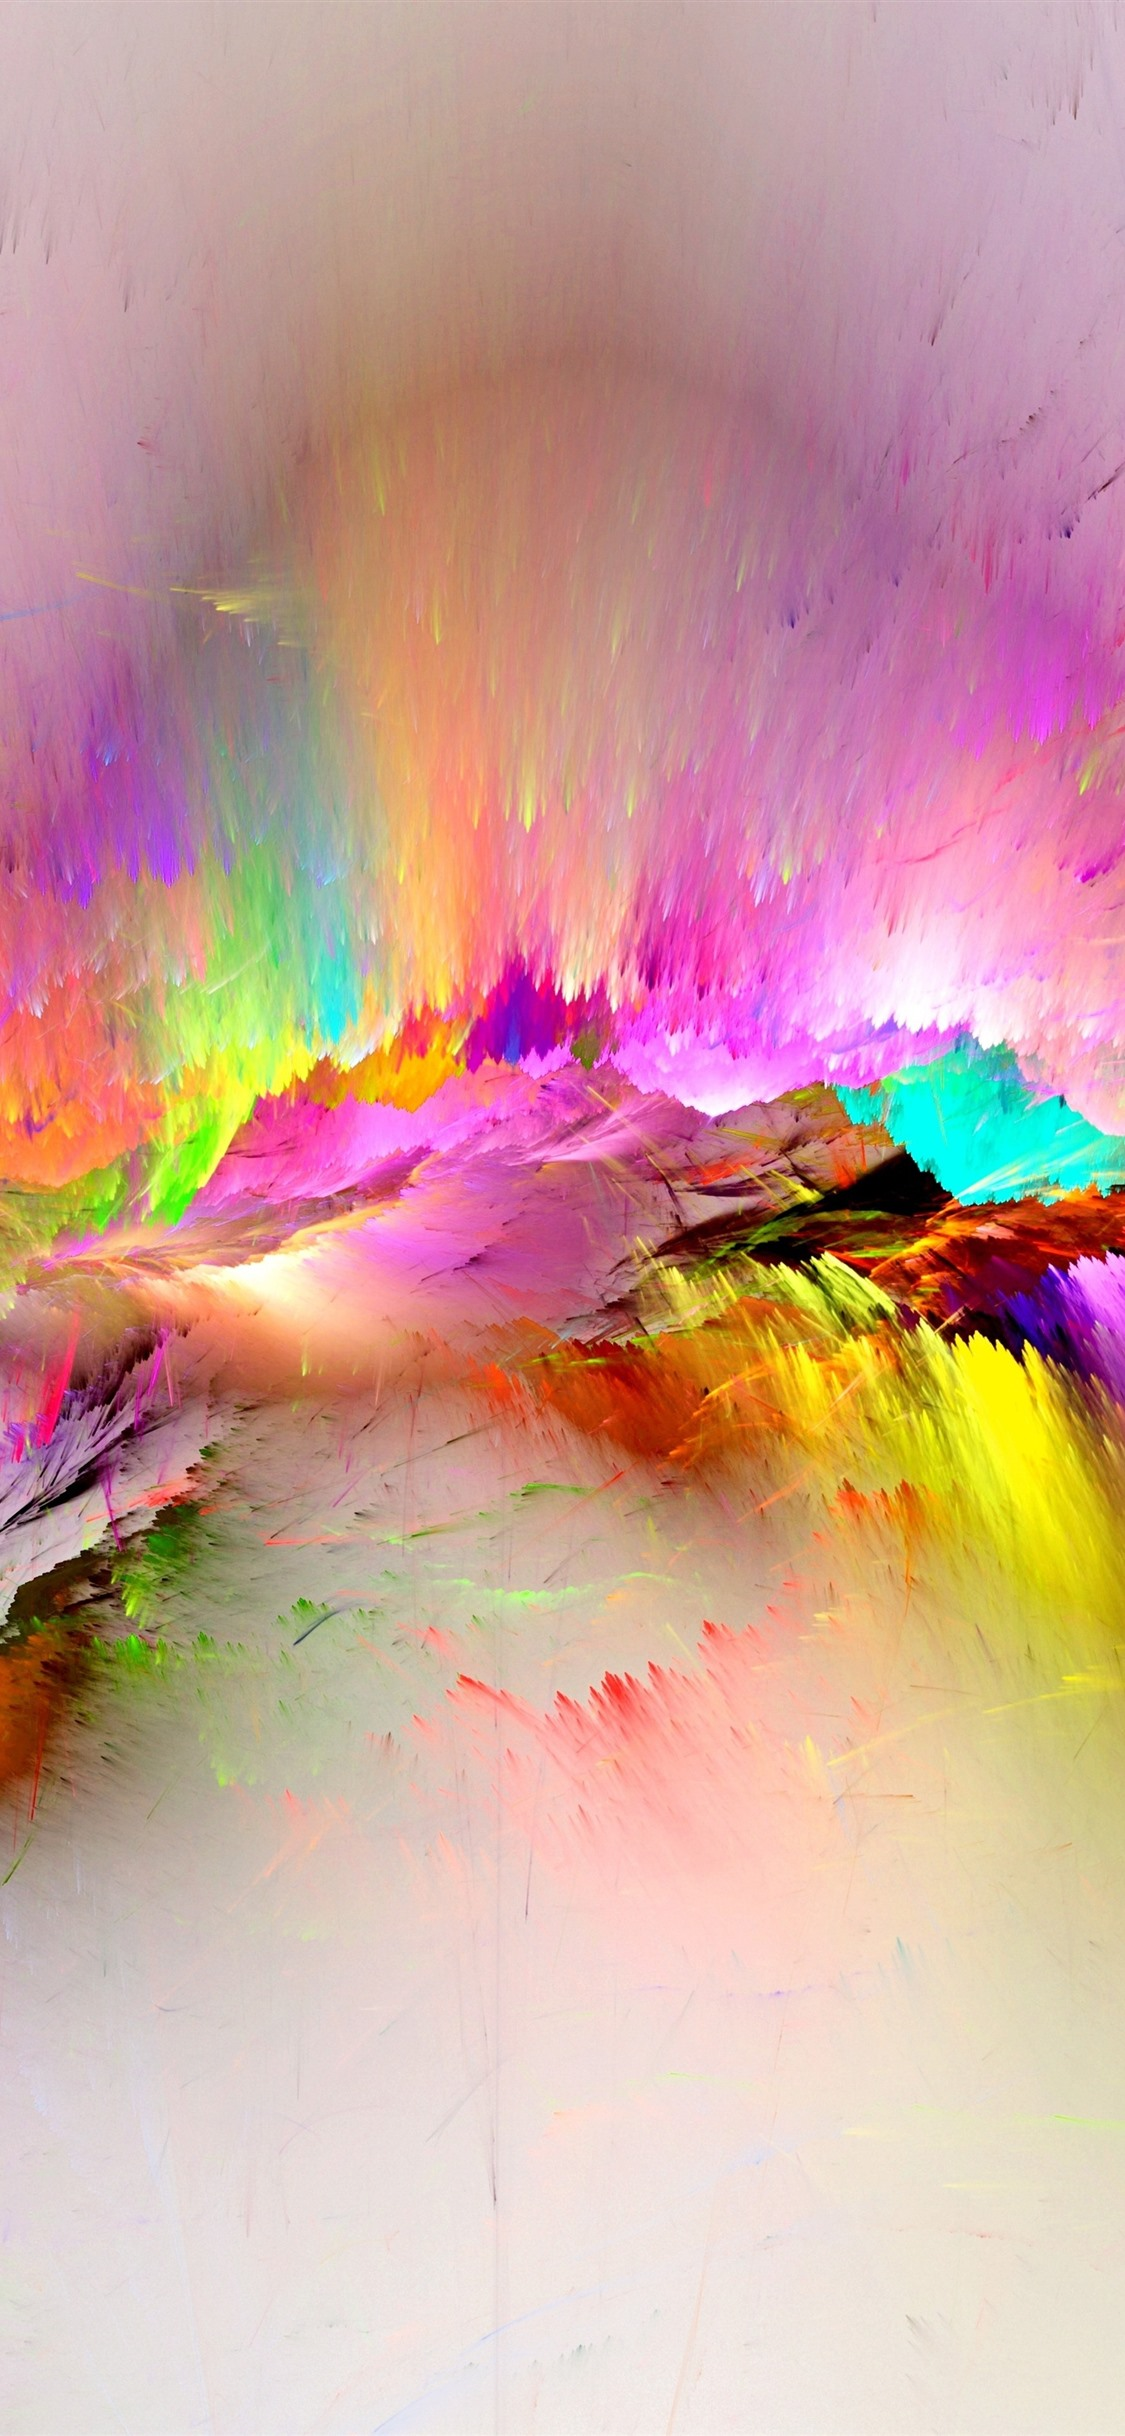 Colorful Paint Rainbow Abstract 1242x2688 Iphone 11 Pro Xs Max Wallpaper Background Picture Image